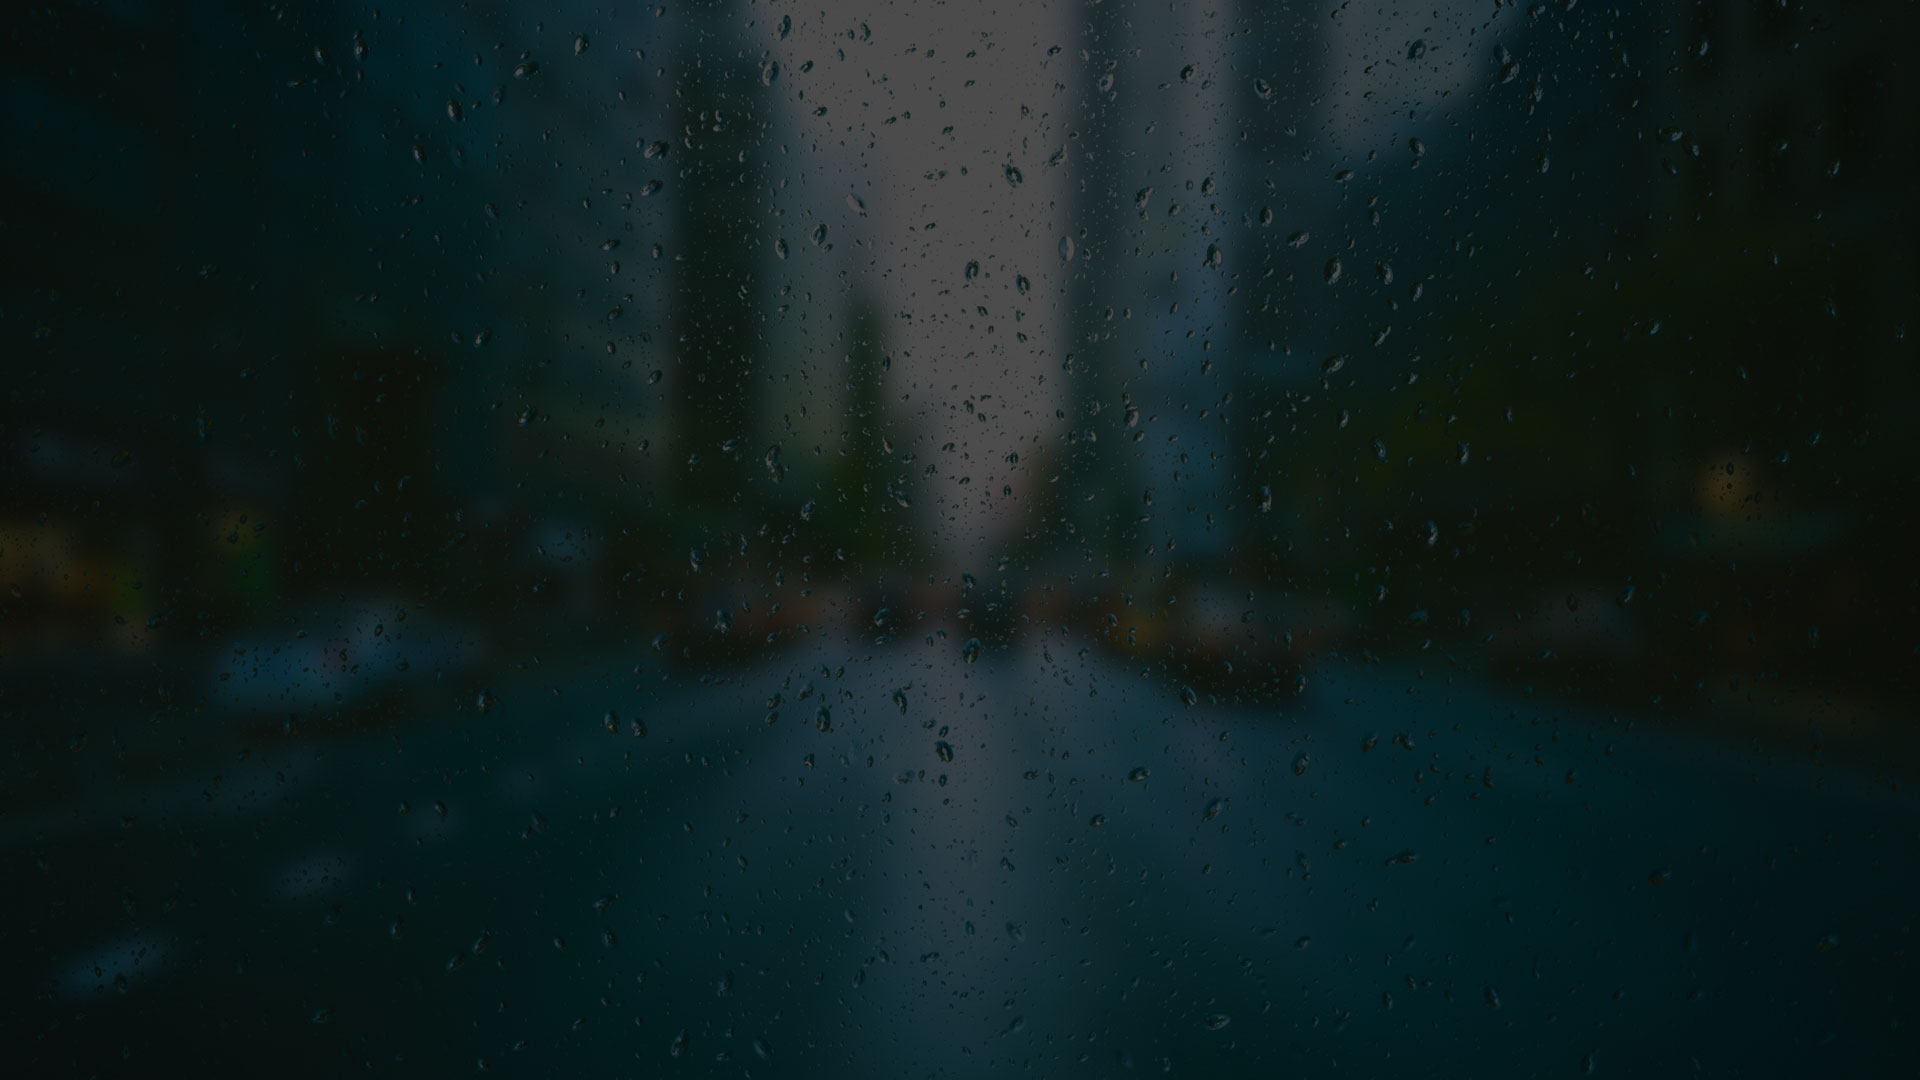 background image of rain of lens